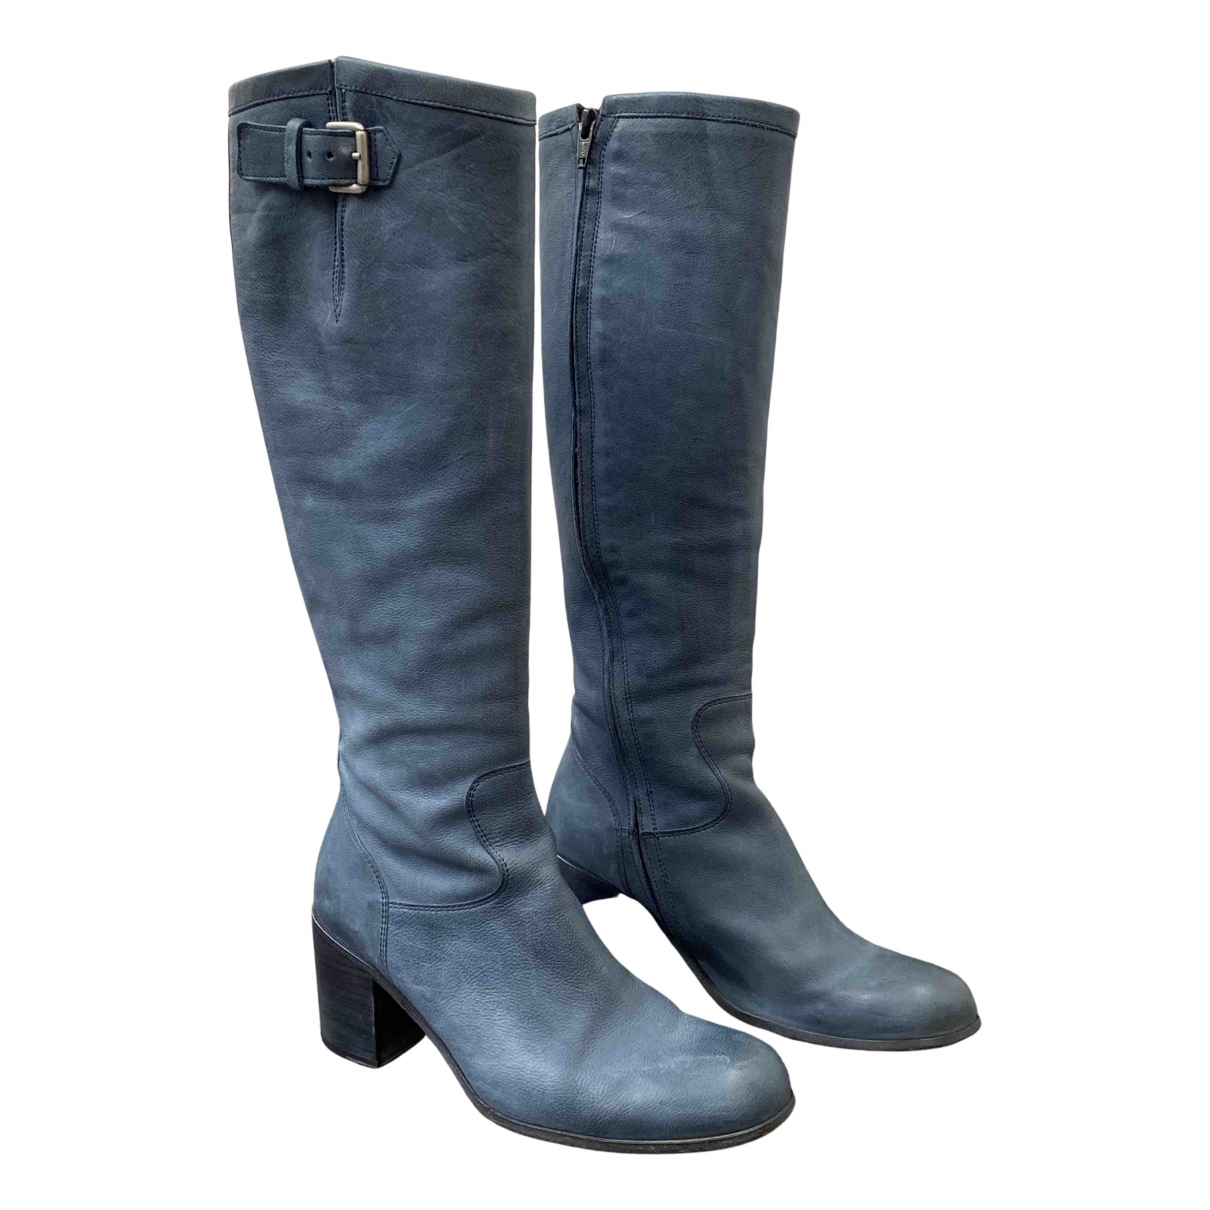 Free Lance Geronimo Blue Leather Boots for Women 36 EU